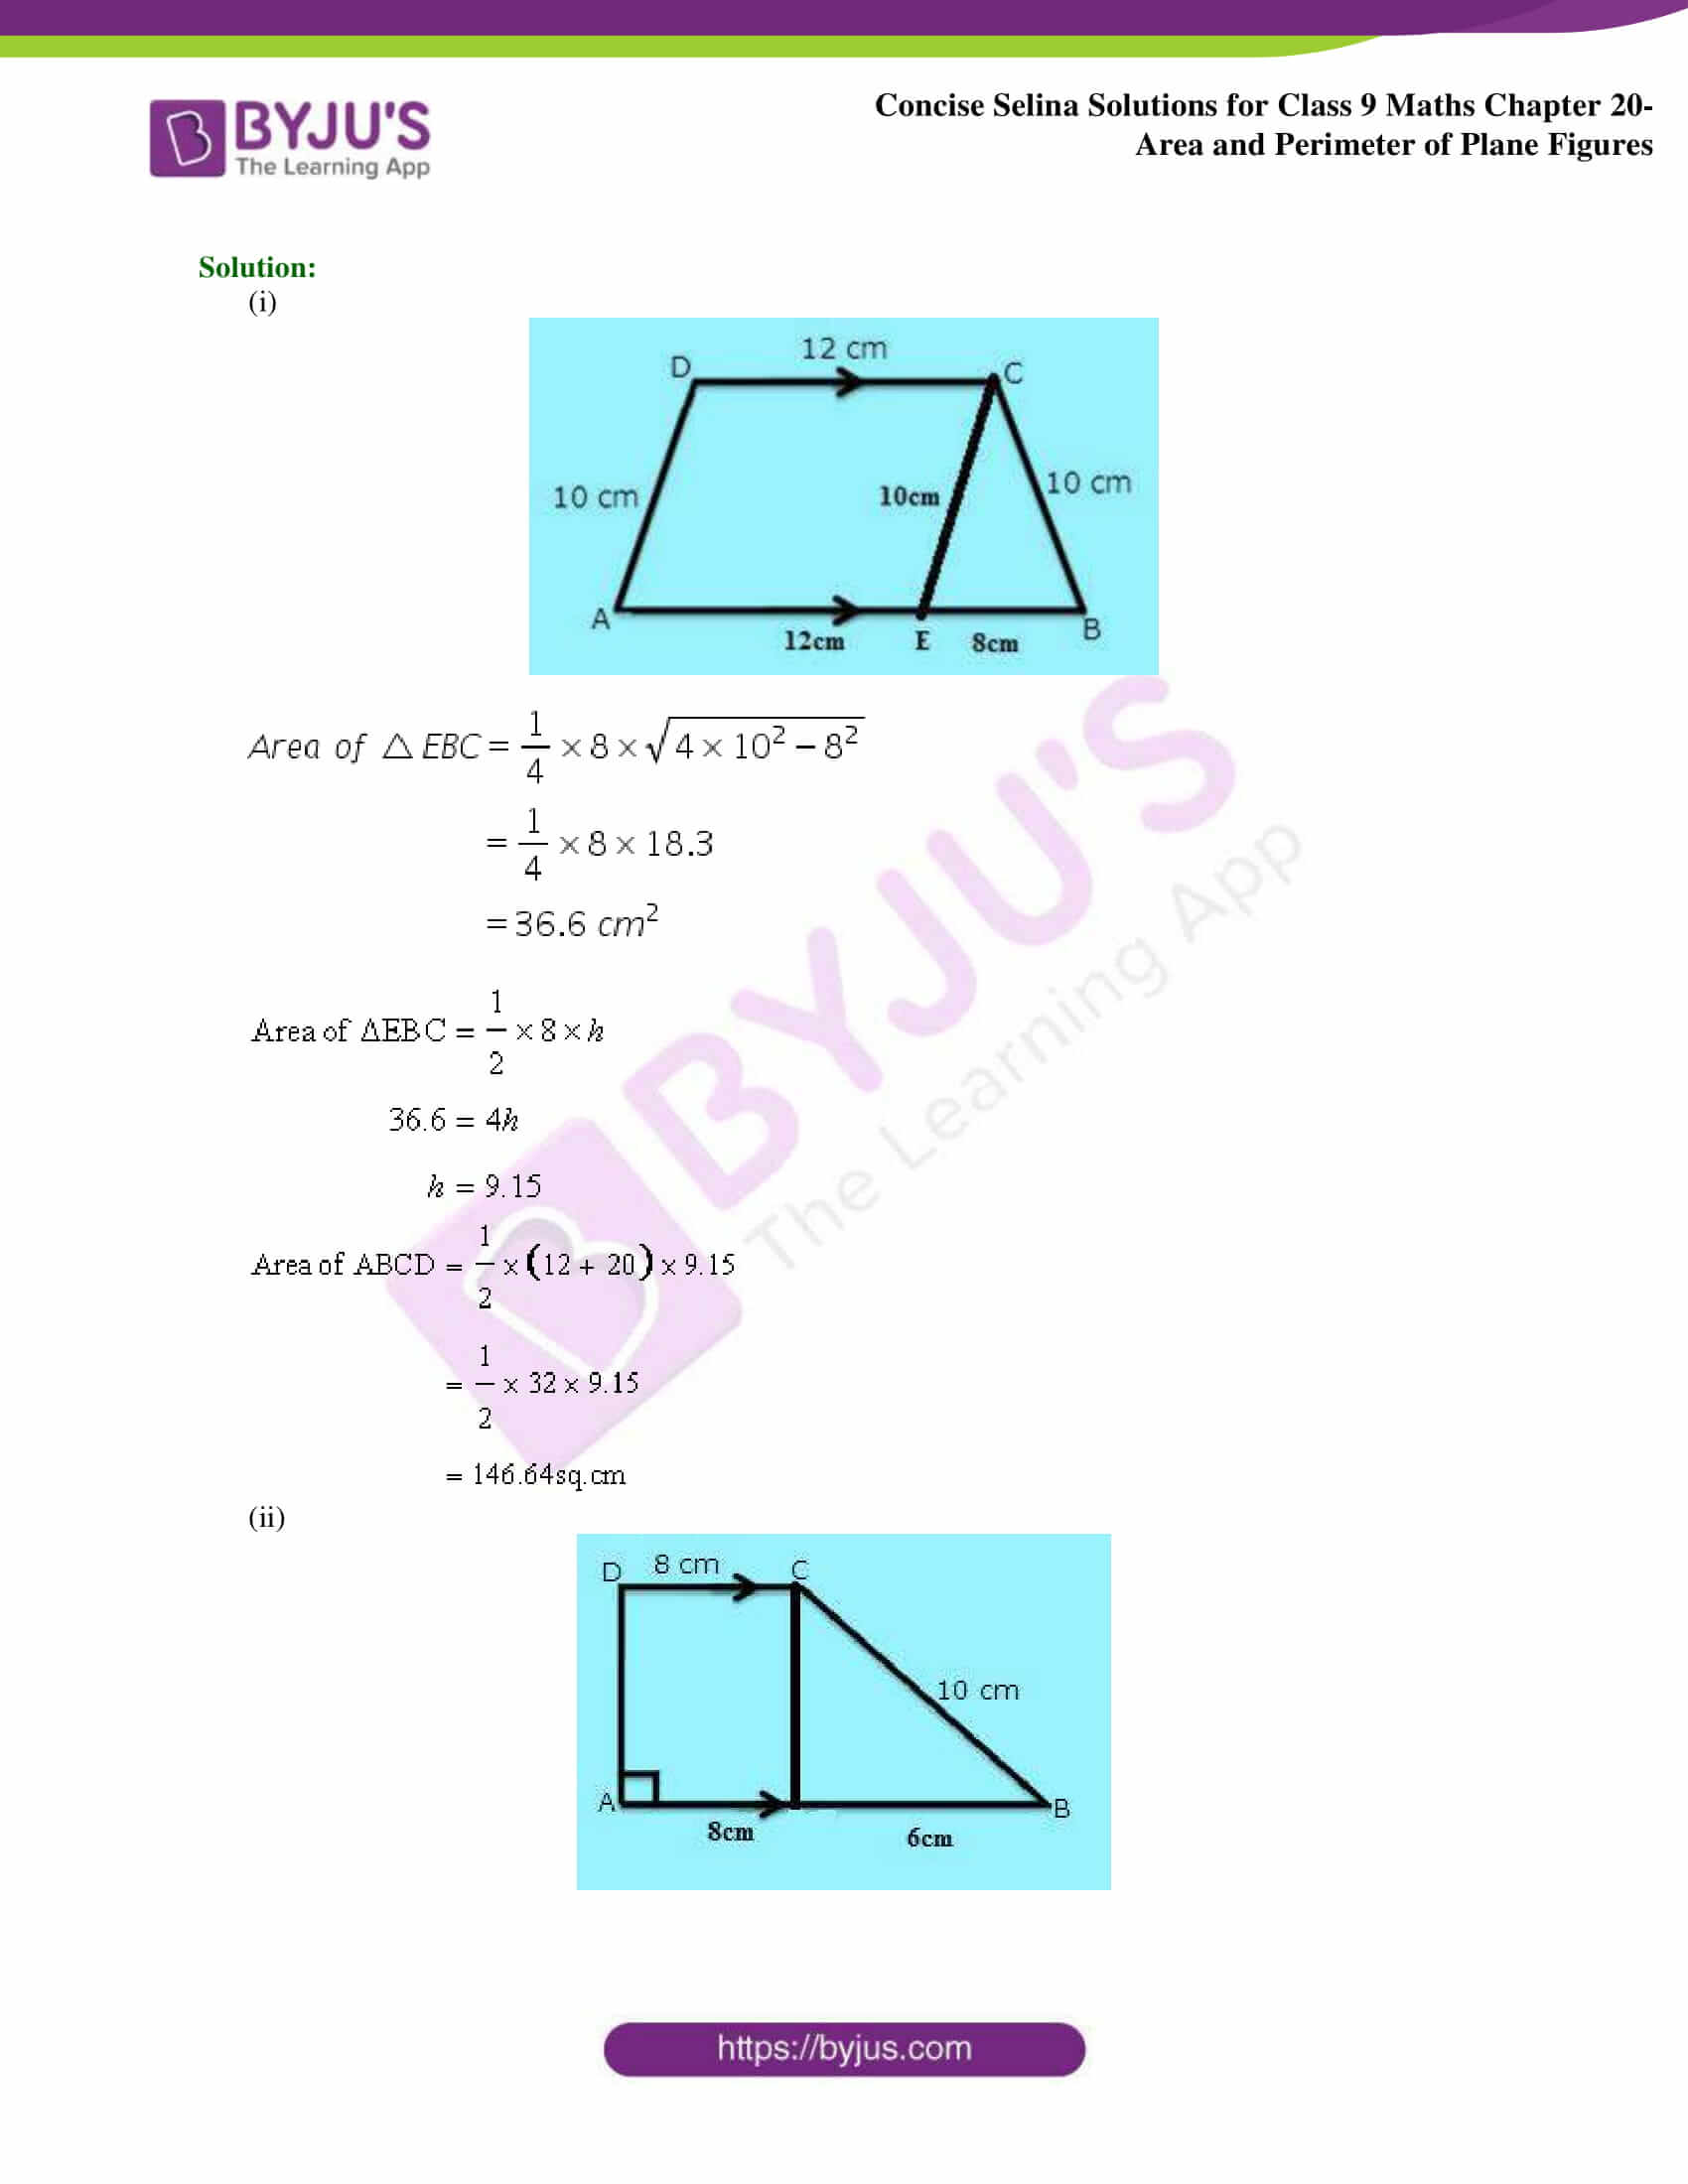 Concise Selina Solutions Class 9 Maths Chapter 20 Area and Perimeter of Plane part 26